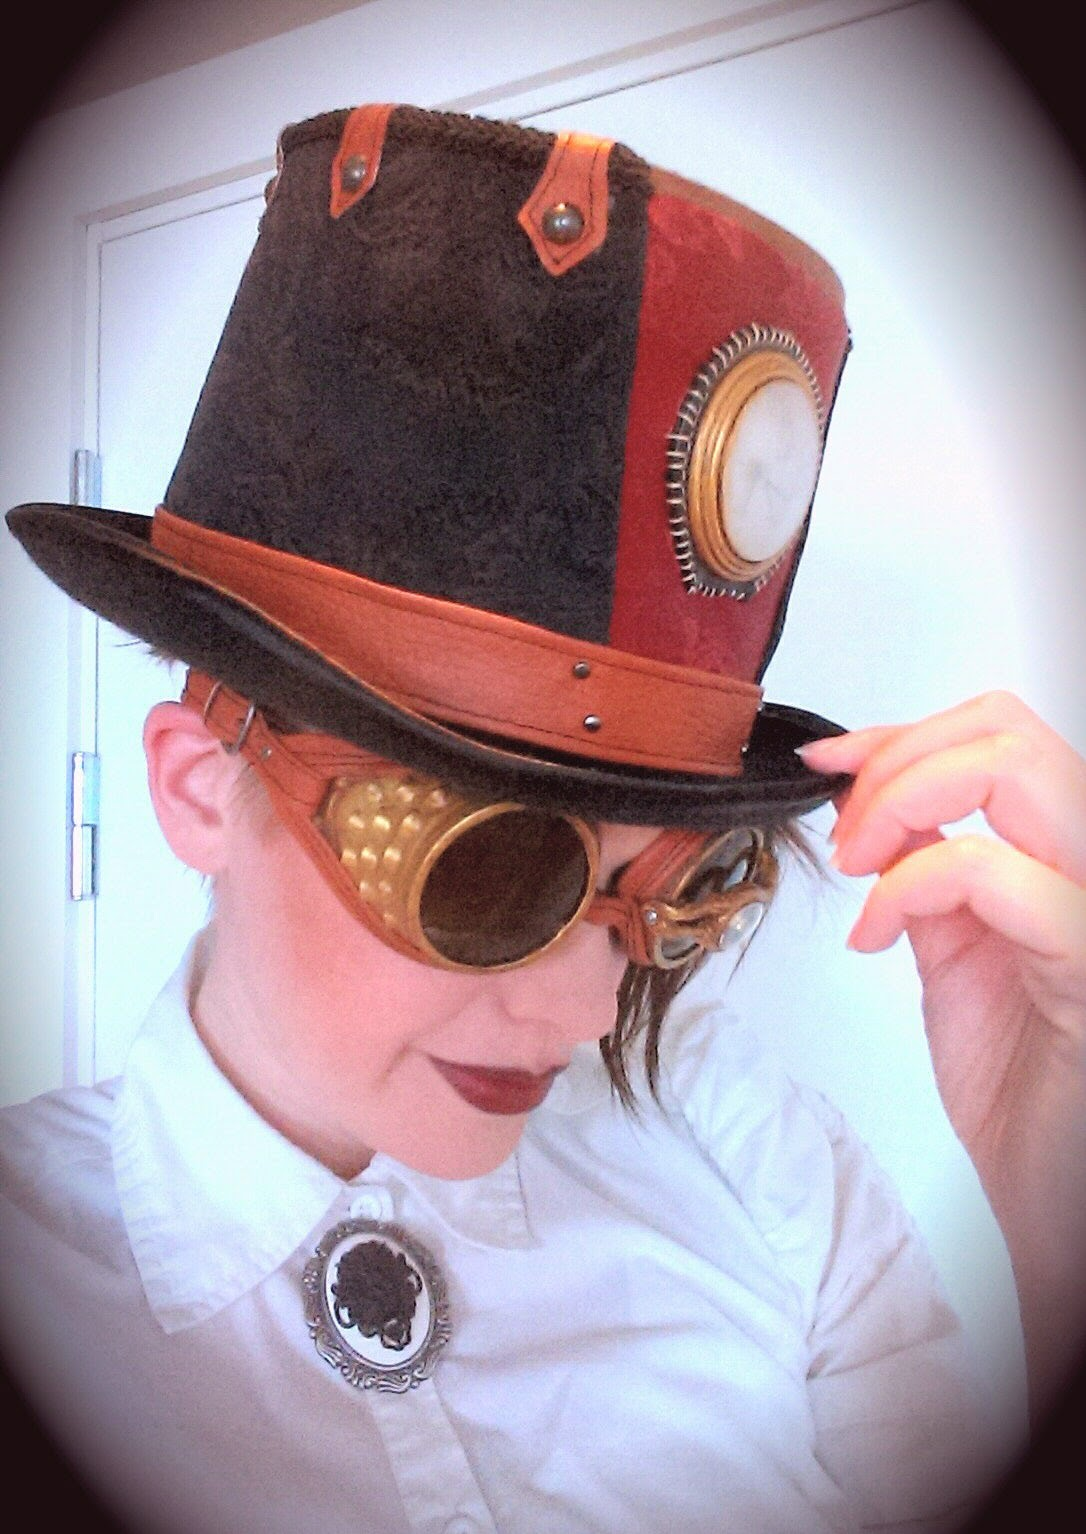 1a748f9b0a Chrix Design - Cosplayer and prop maker from Norway. Let s make ...